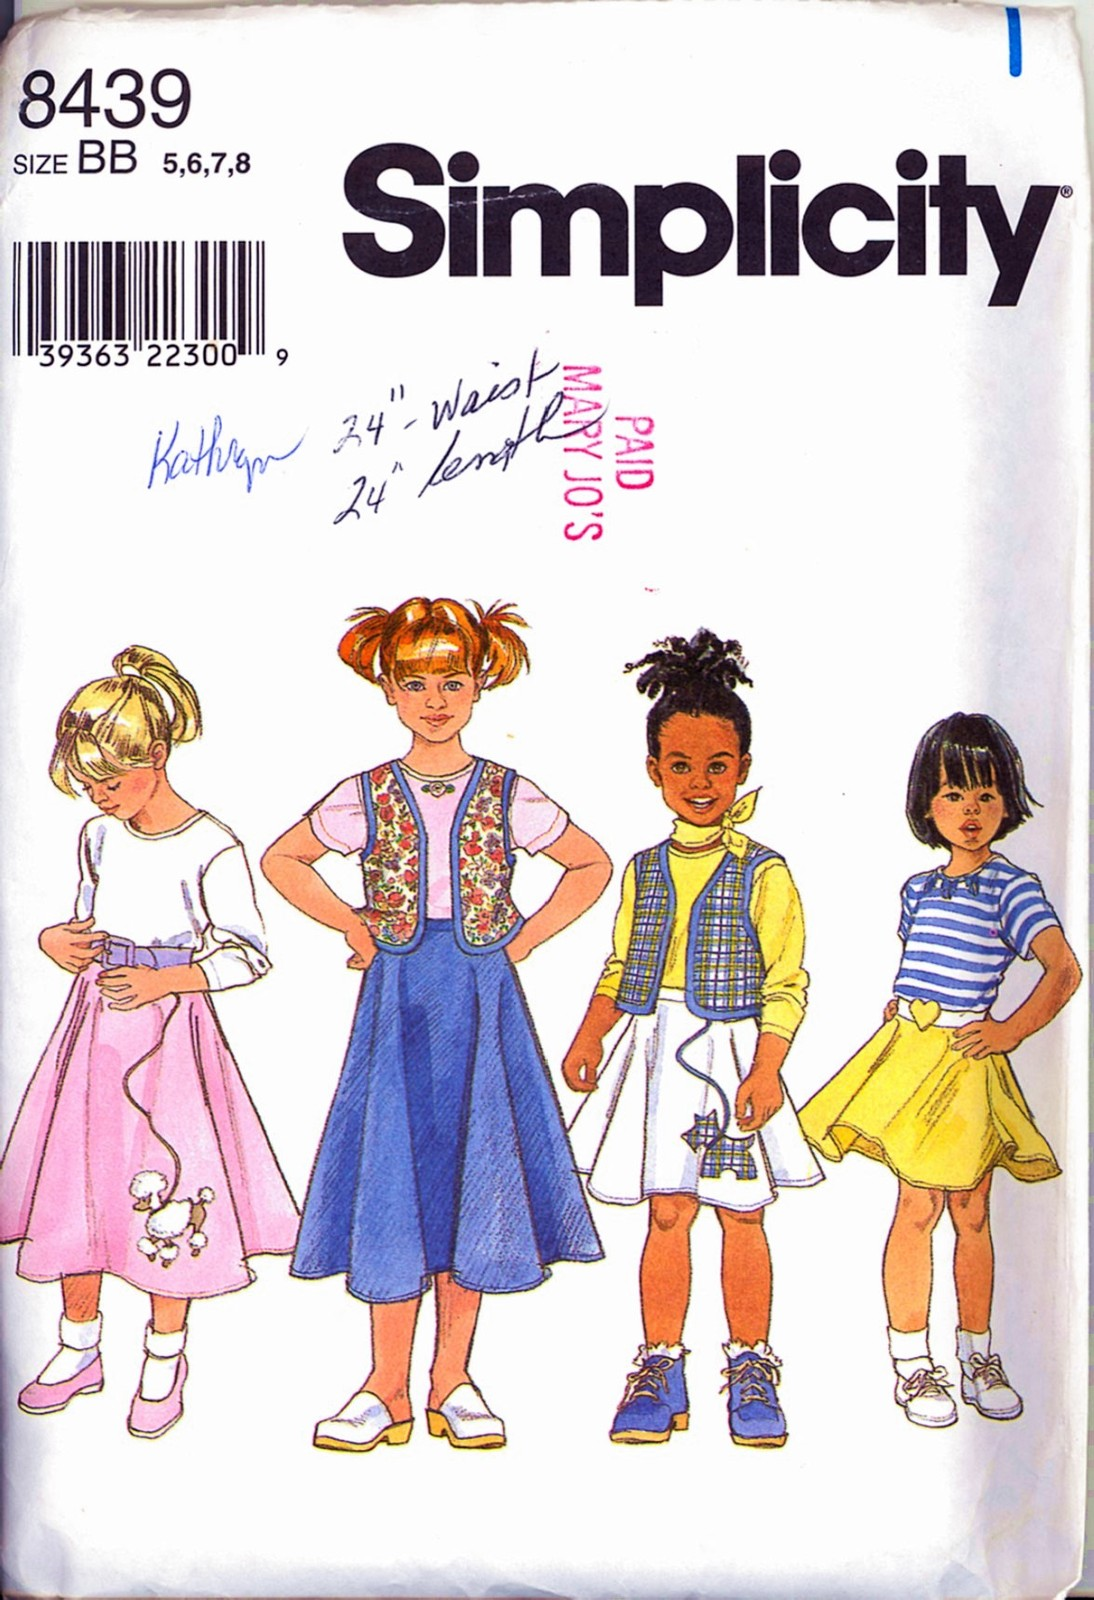 Primary image for 50s Style Size 5 6 7 8 Poodle Circle Skirt Vest Knit Top Simplicity 8439 Pattern